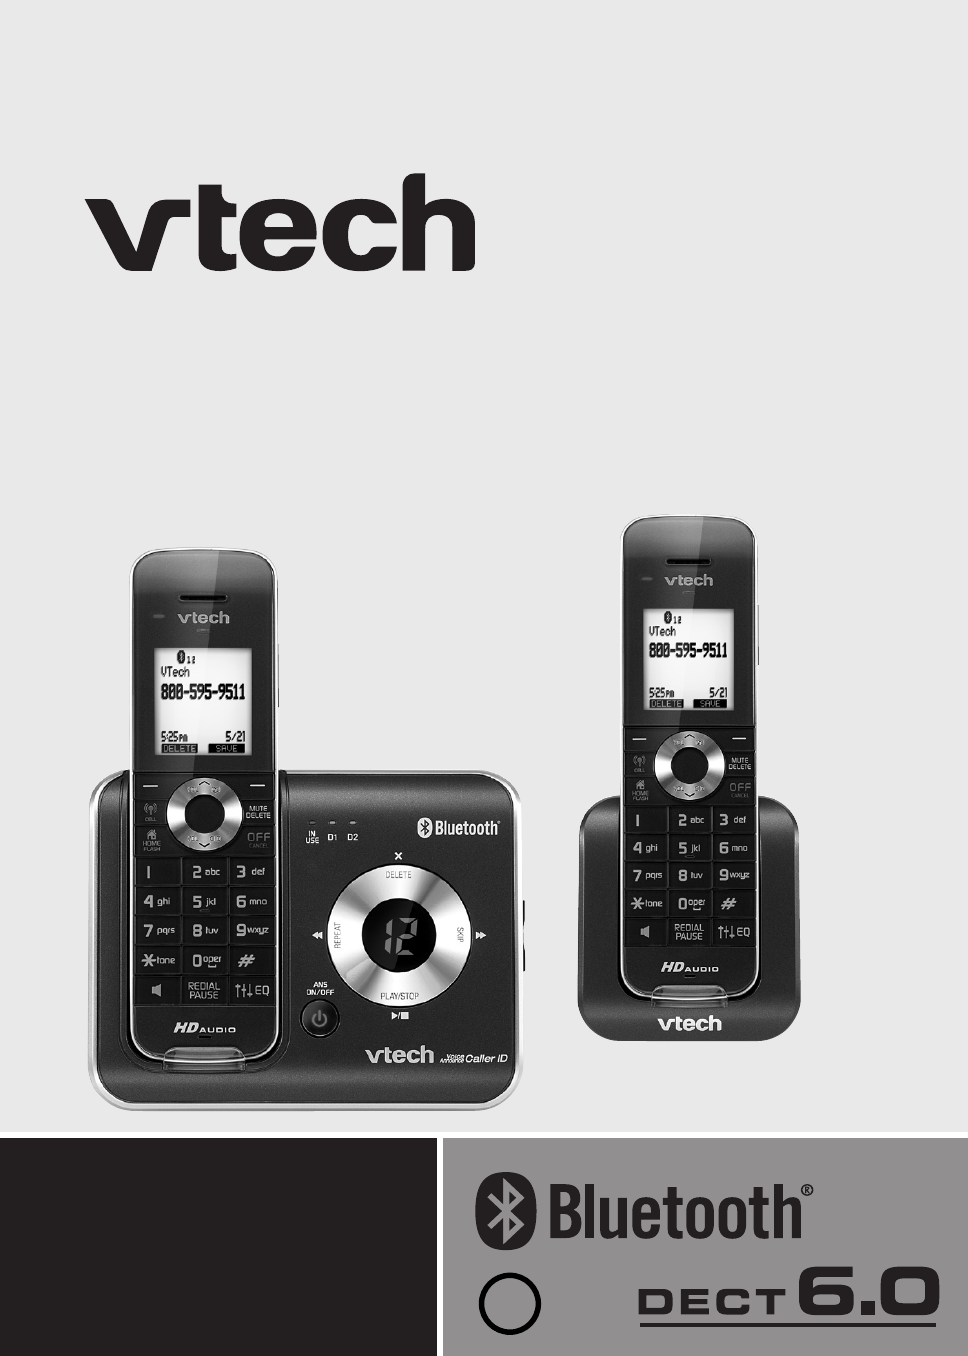 vtech dect manual good owner guide website u2022 rh calvida co VTech Phones Manuals DECT 6 0 CS6329 2 VTech Cordless Phone DECT 6 0 User Manual